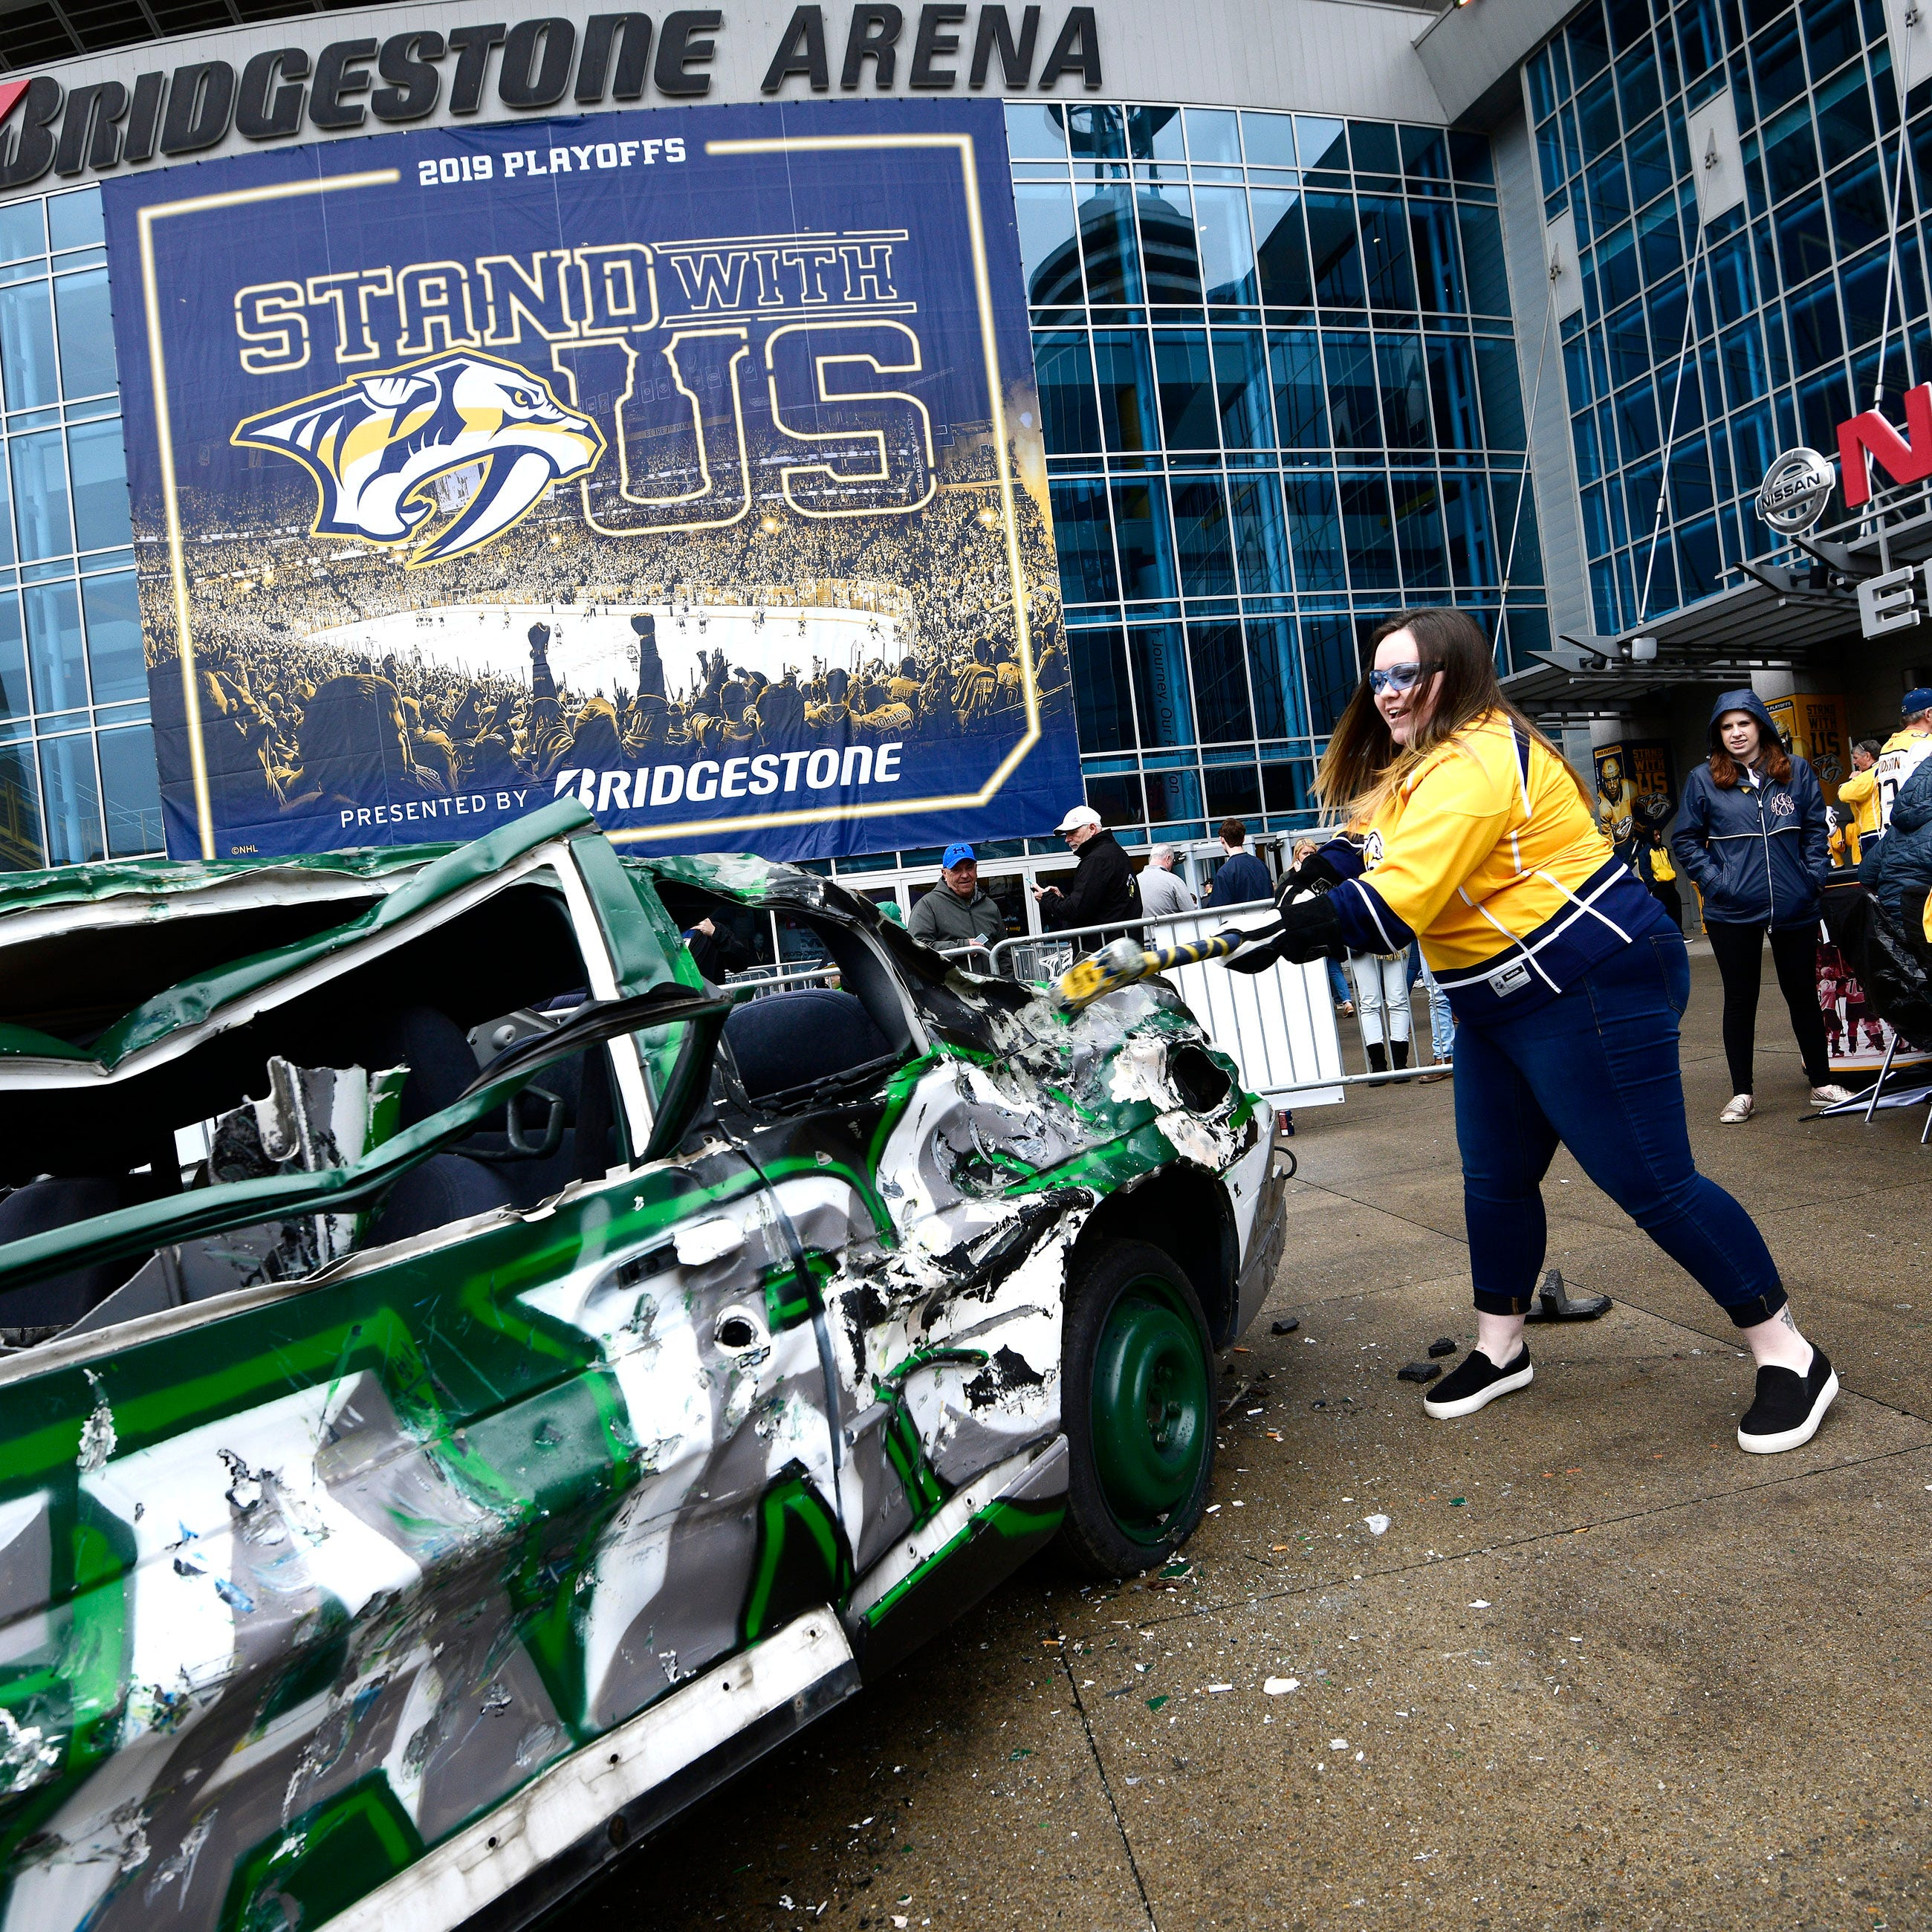 Where will Nashville, Predators be in 30 years? Together in this vision